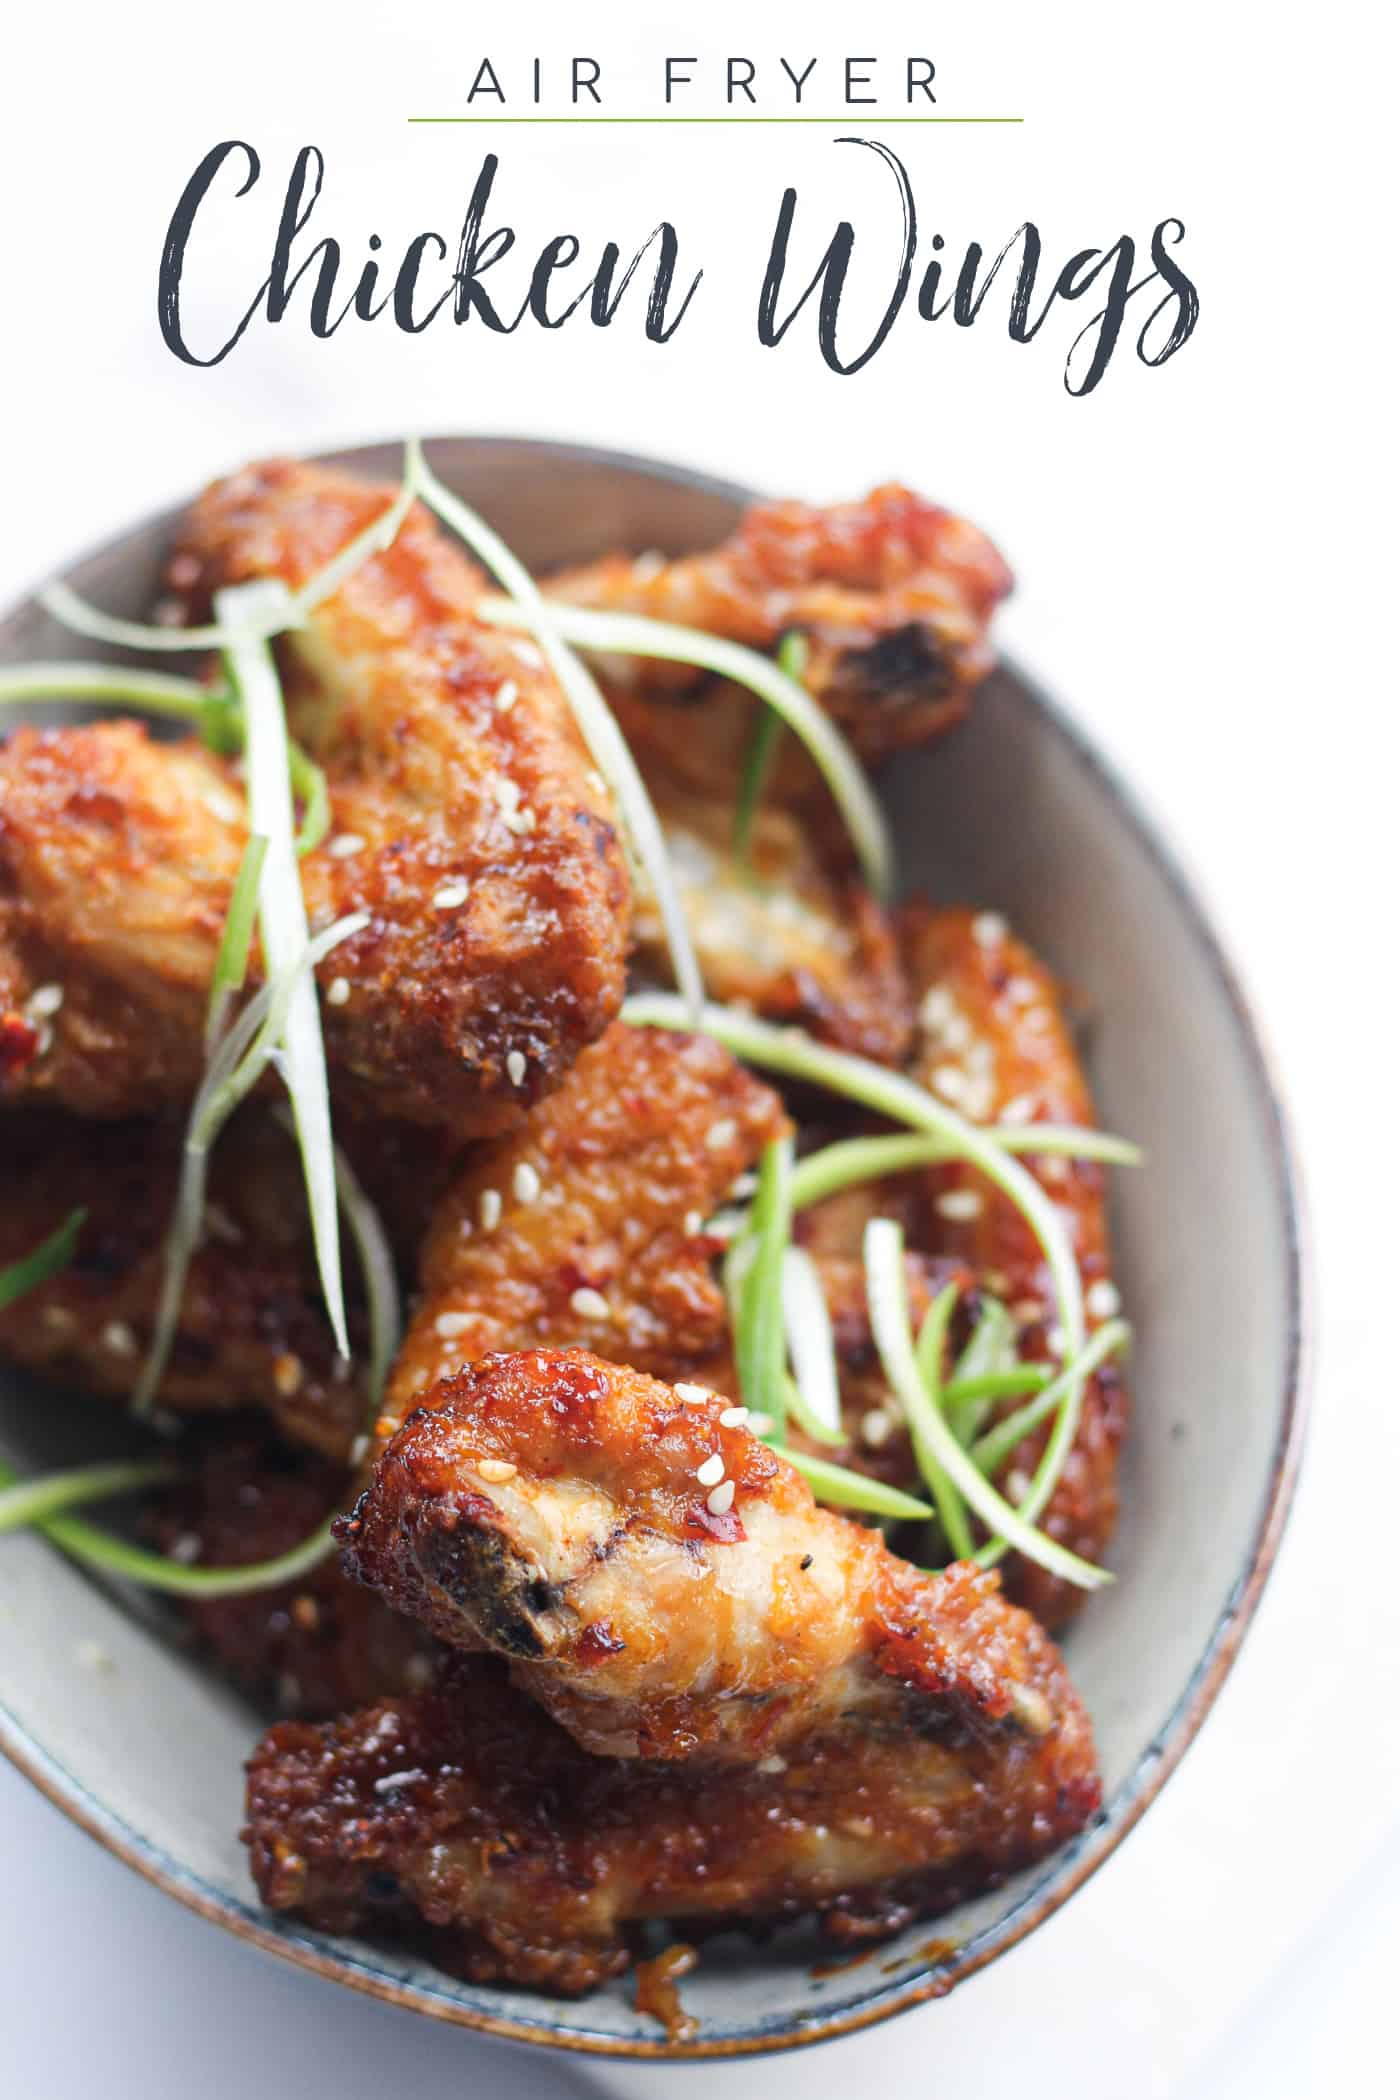 air fryer chicken wings in a bowl with text